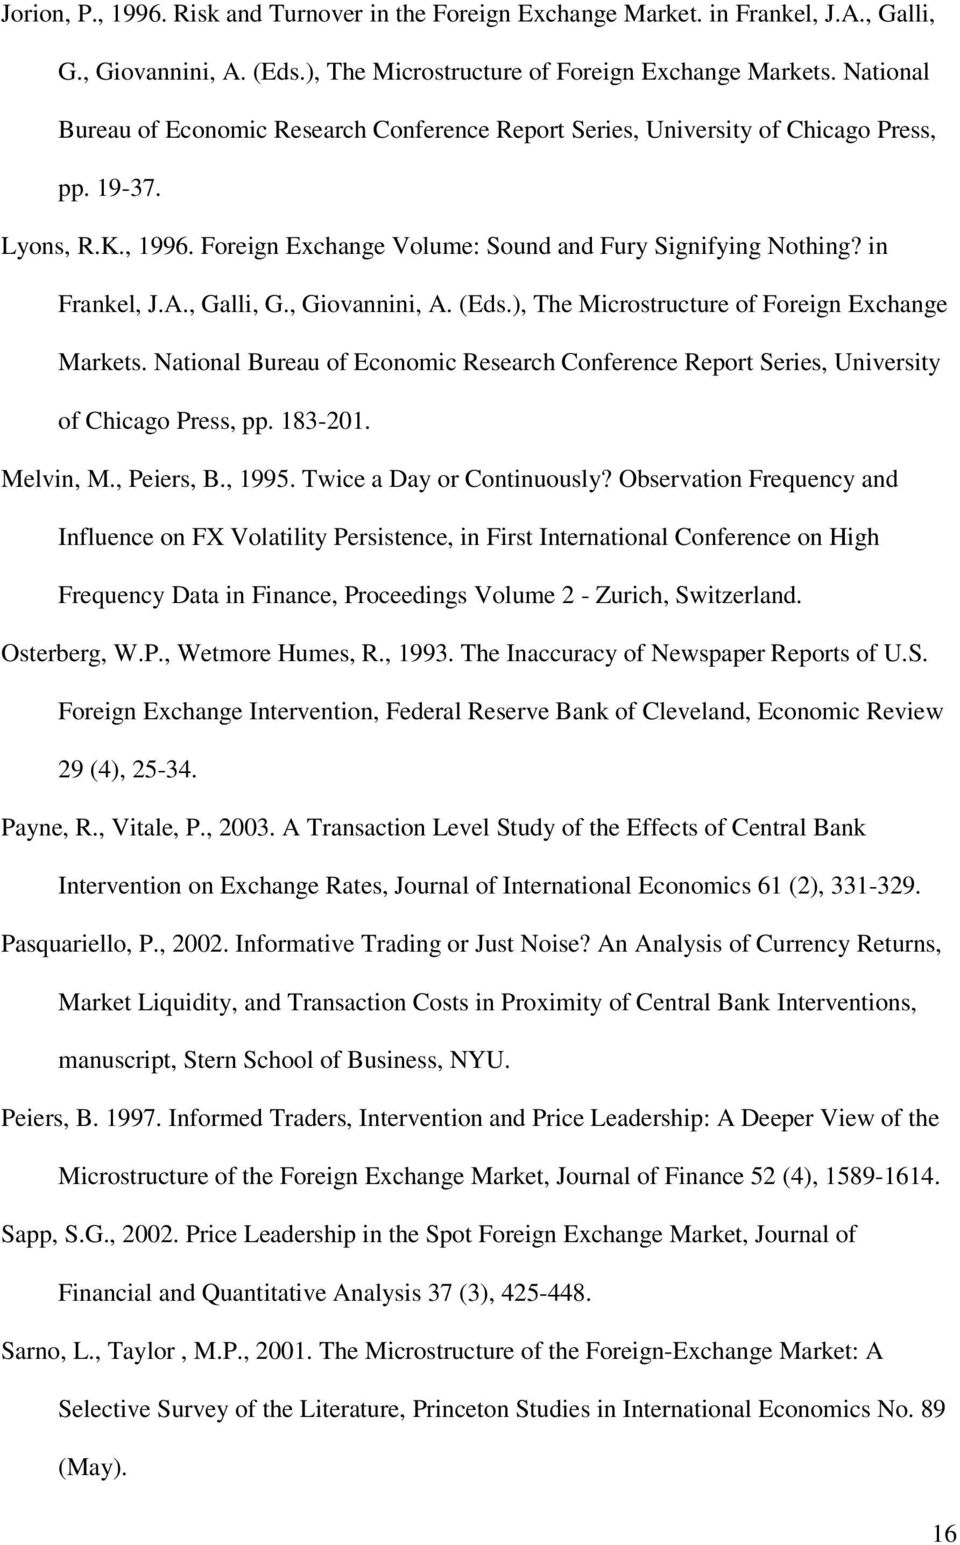 , Galli, G., Giovannini, A. (Eds.), The Microstructure of Foreign Exchange Markets. National Bureau of Economic Research Conference Report Series, University of Chicago Press, pp. 183-201. Melvin, M.